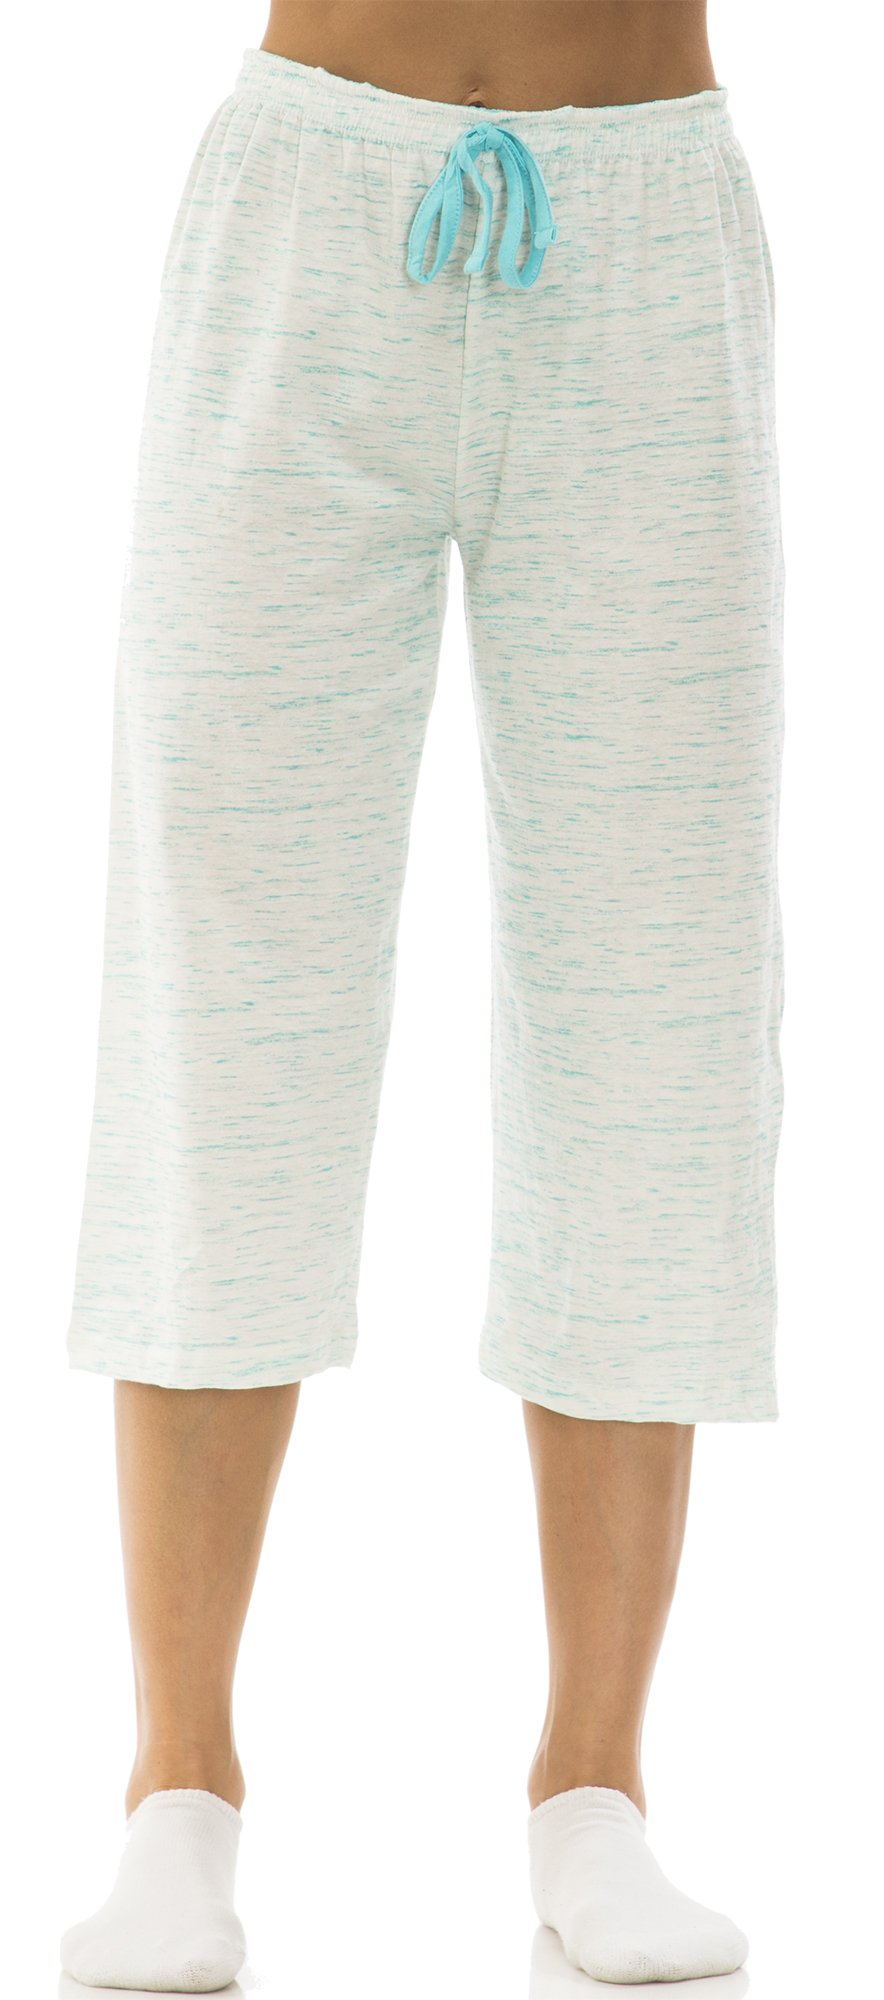 dollhouse (6221DH) Womans Marled Cotton Jersey Capri Lounge Pant Size: XLarge In Blue (420)